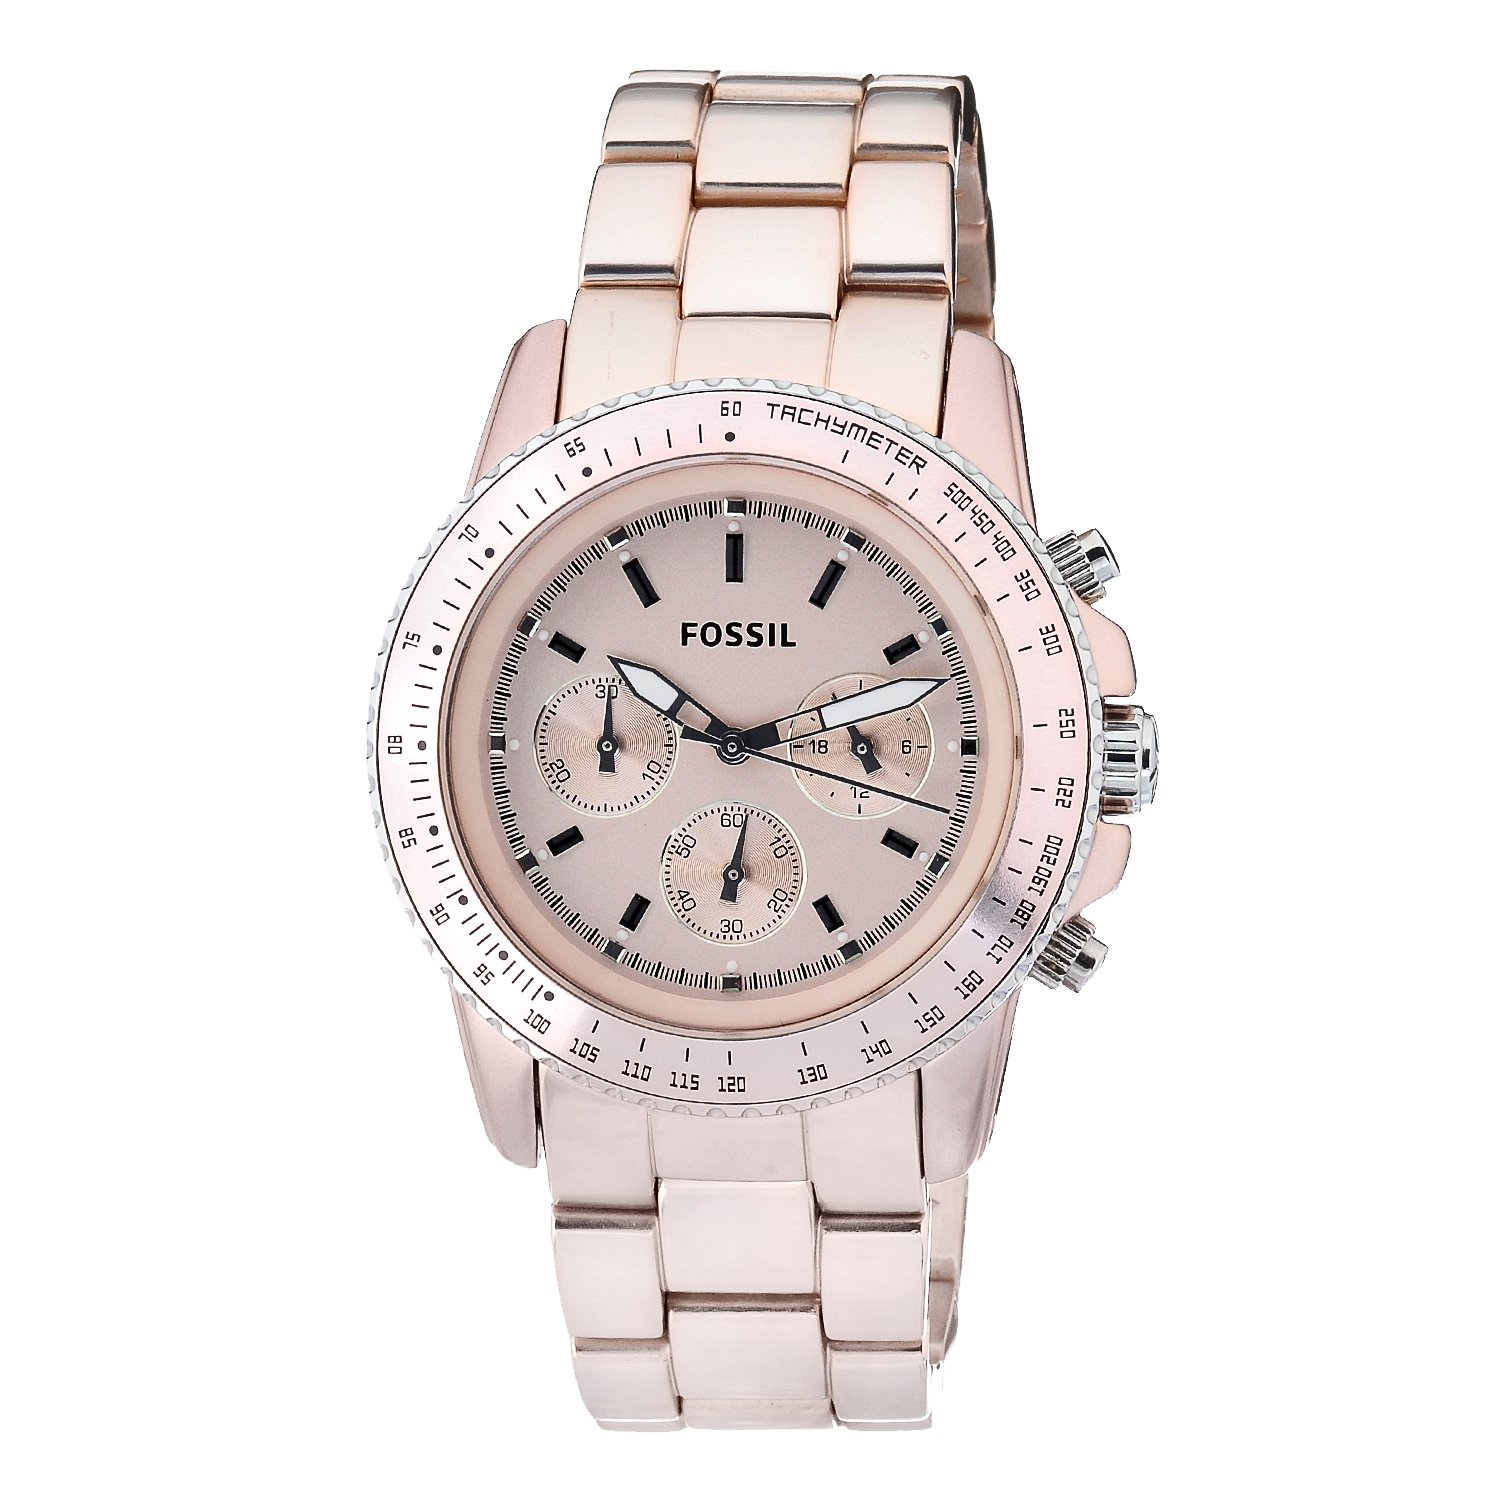 brand new fossil ch2707 stella s pink chronograph